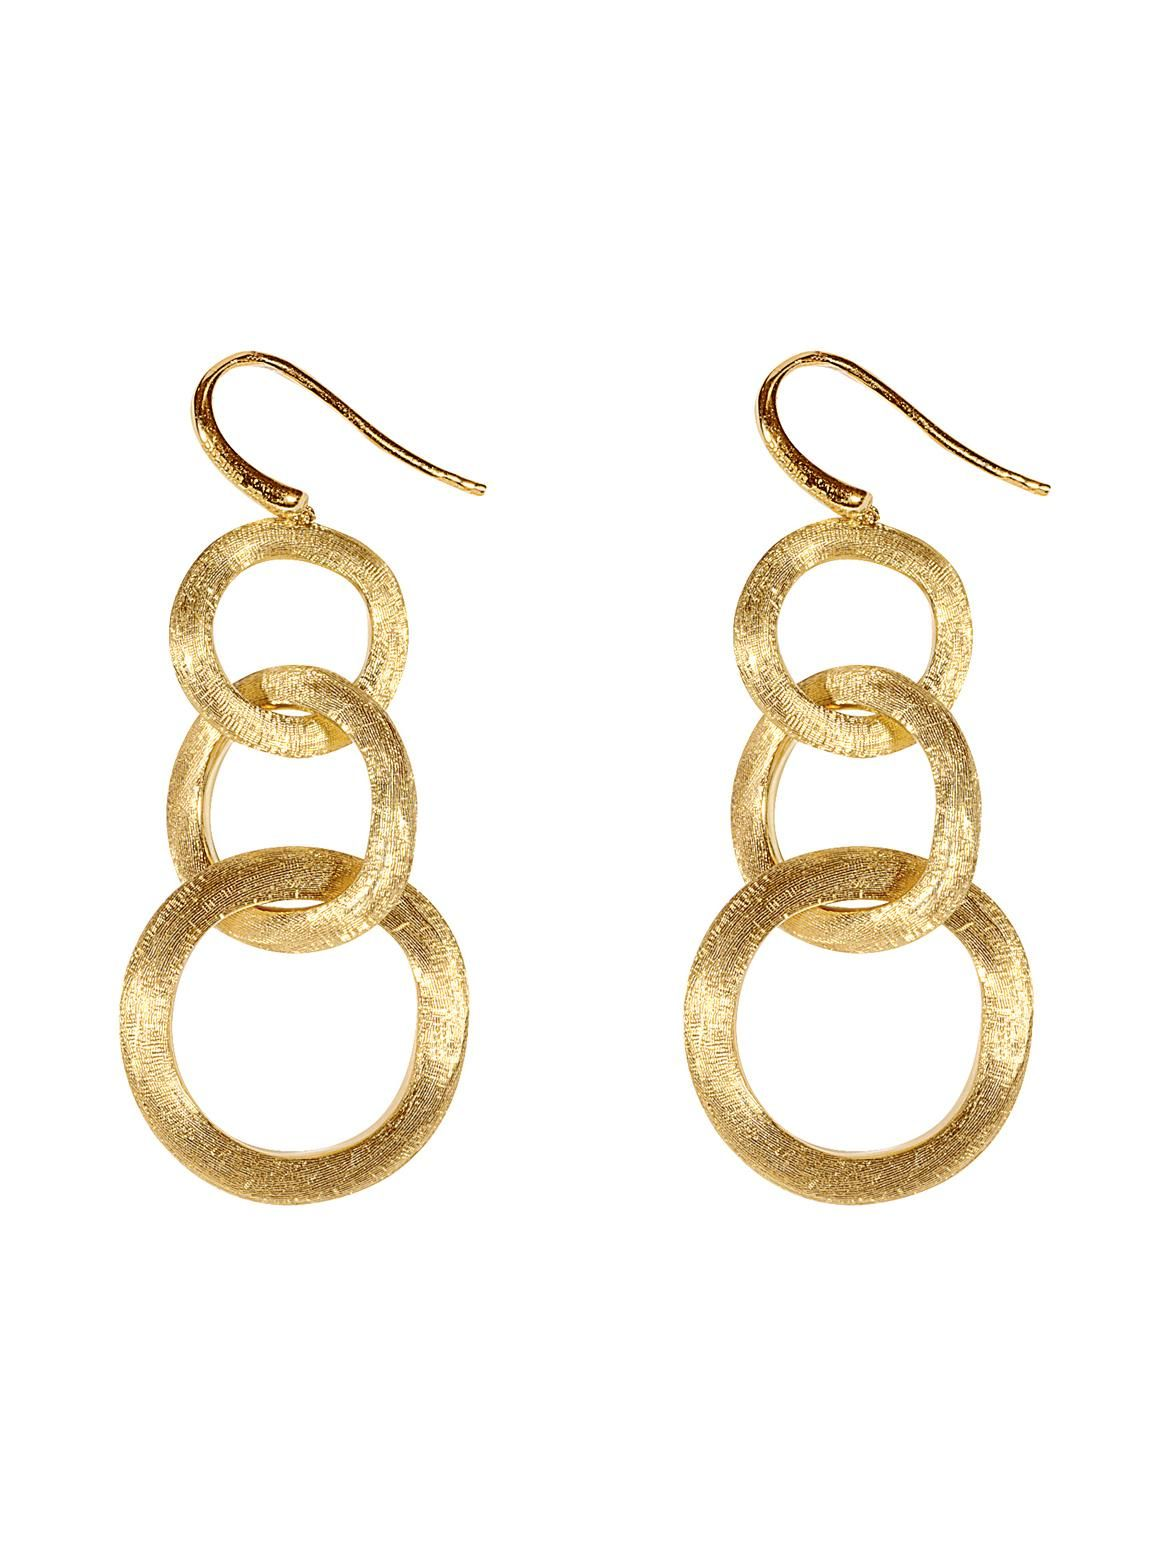 Marco Bicego Jaipur Link Gold Large Drop Earrings jMXIE3